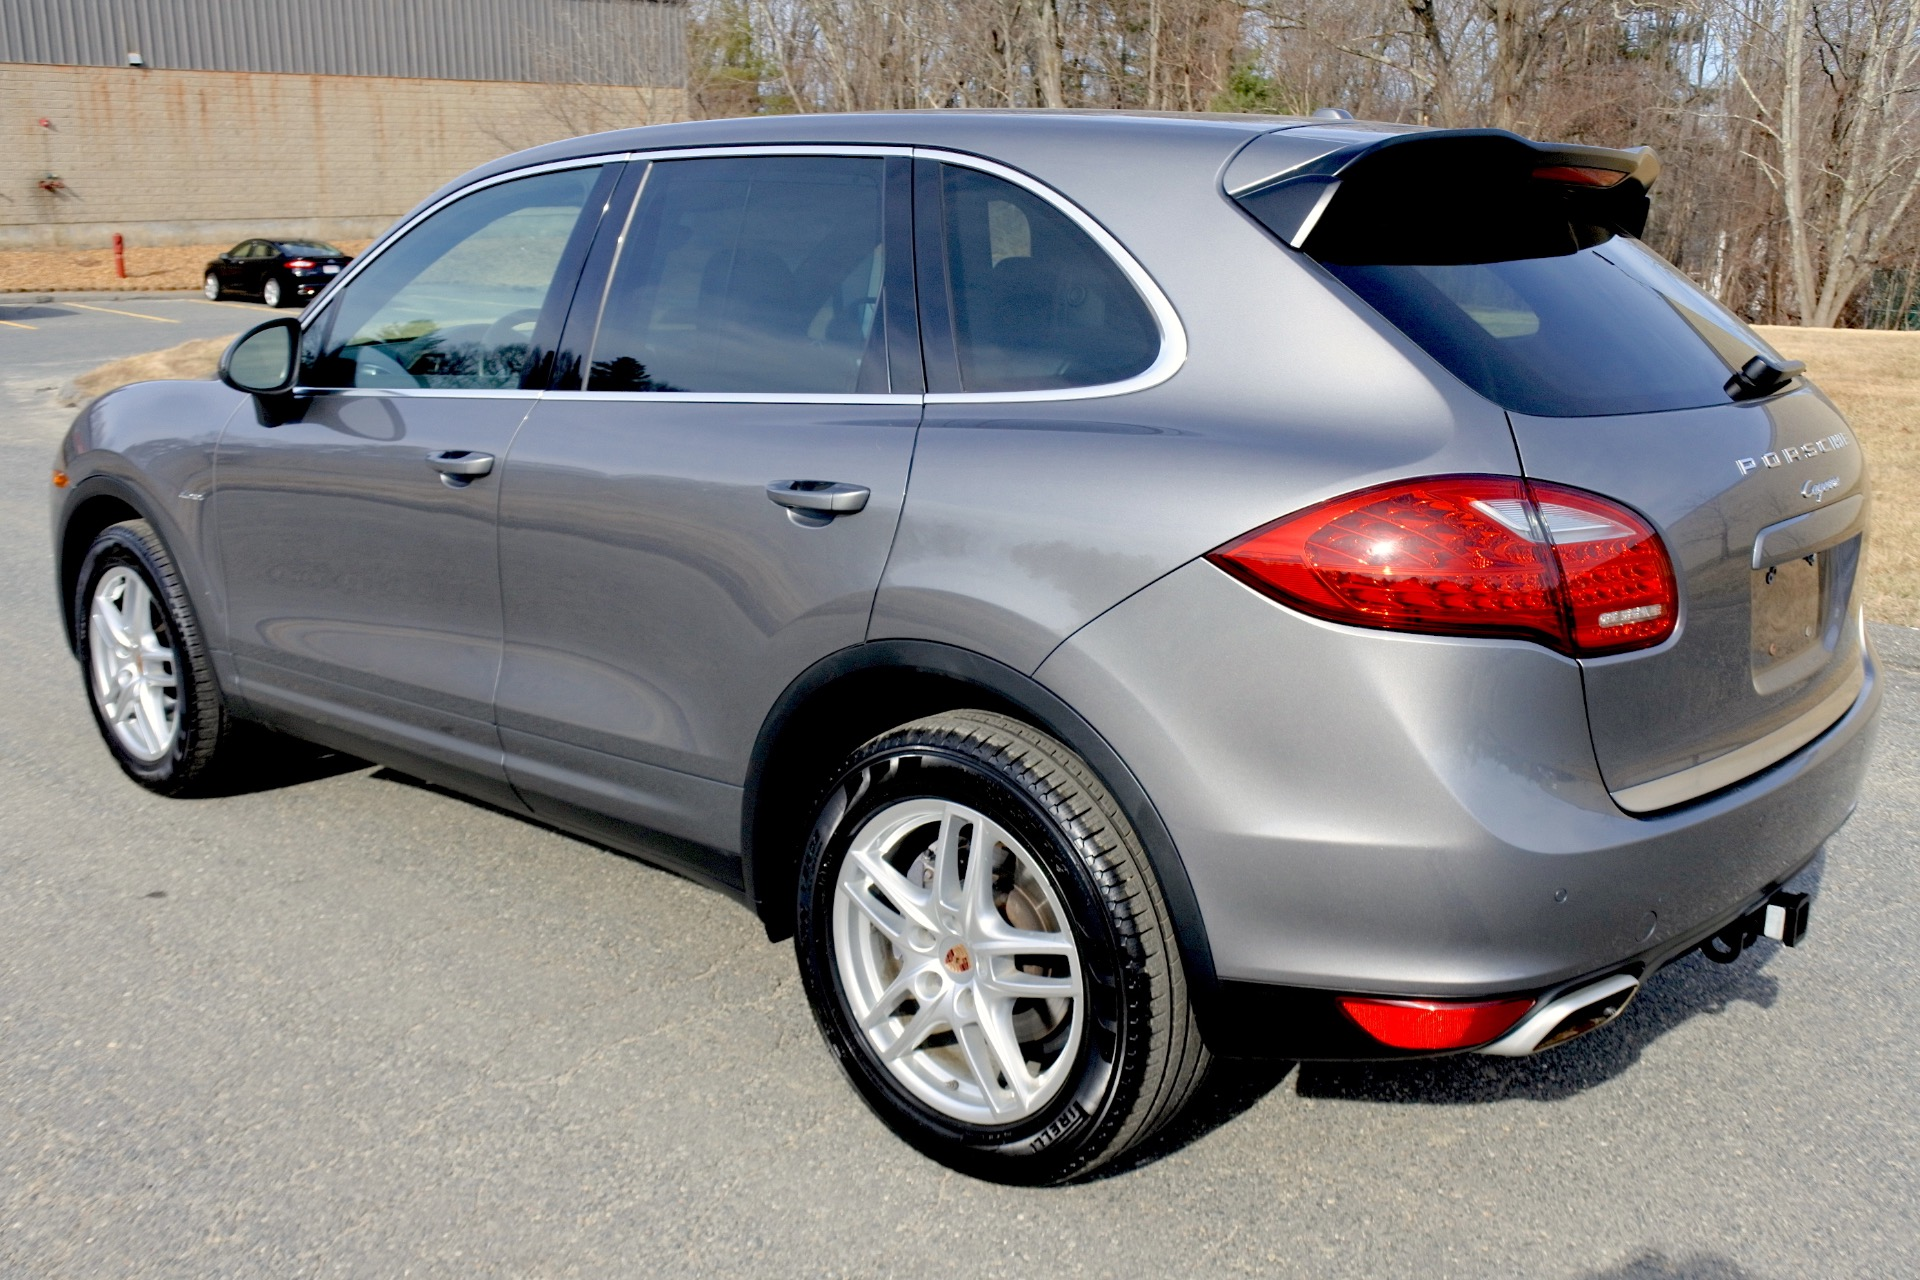 Used 2013 Porsche Cayenne Diesel AWD Used 2013 Porsche Cayenne Diesel AWD for sale  at Metro West Motorcars LLC in Shrewsbury MA 3